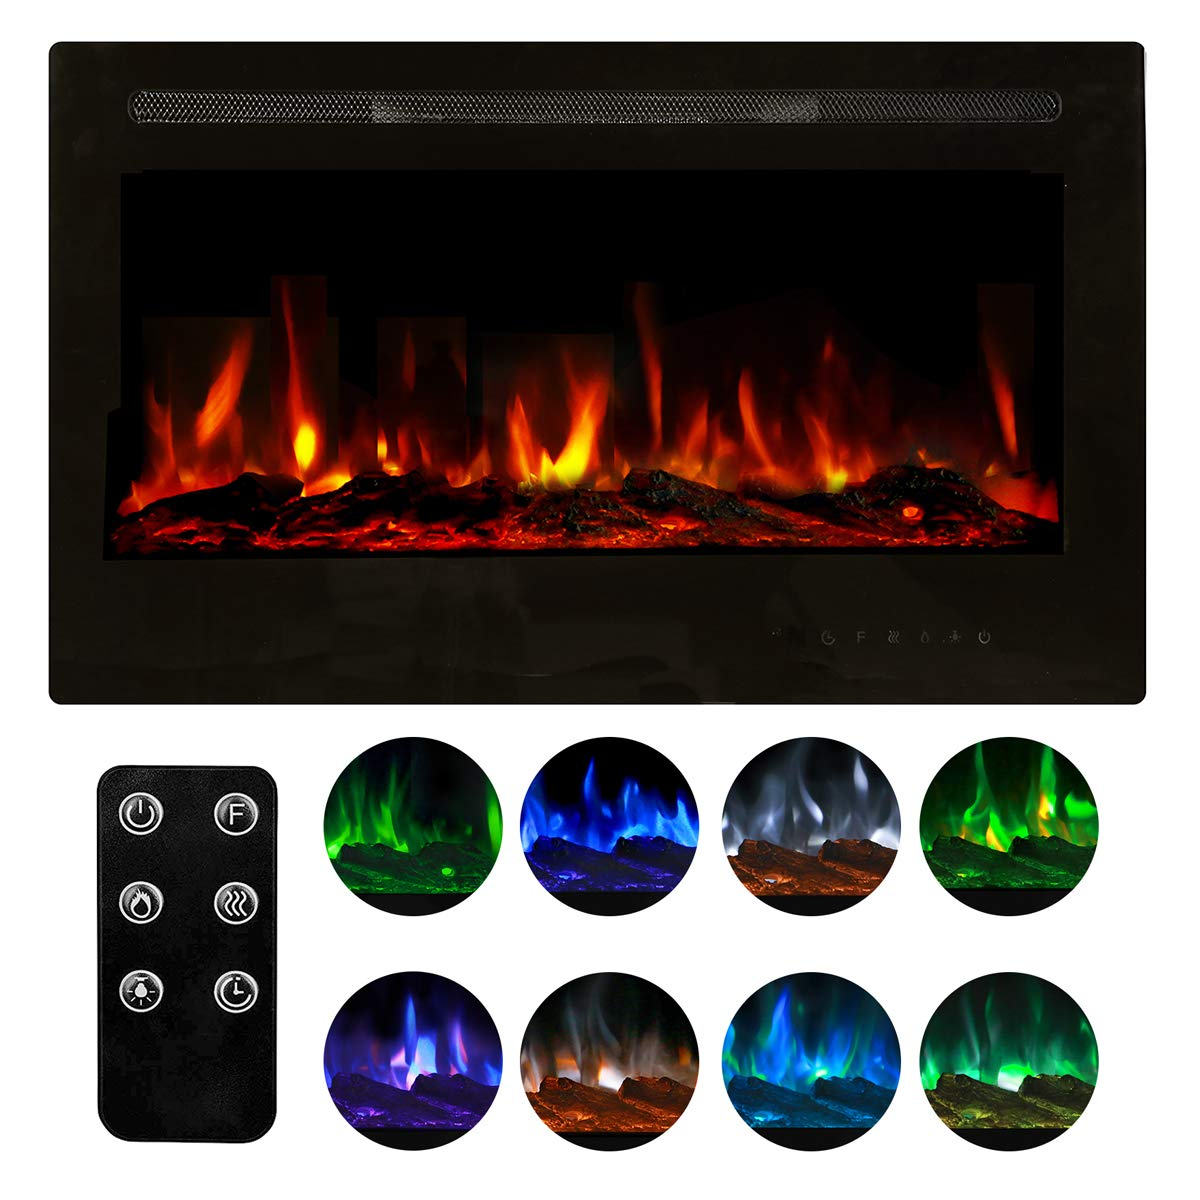 Homedex 36-inch Recessed Mounted Electric Fireplace Insert with Touch Screen Control Panel, Remote Control, 750/1500W, Black